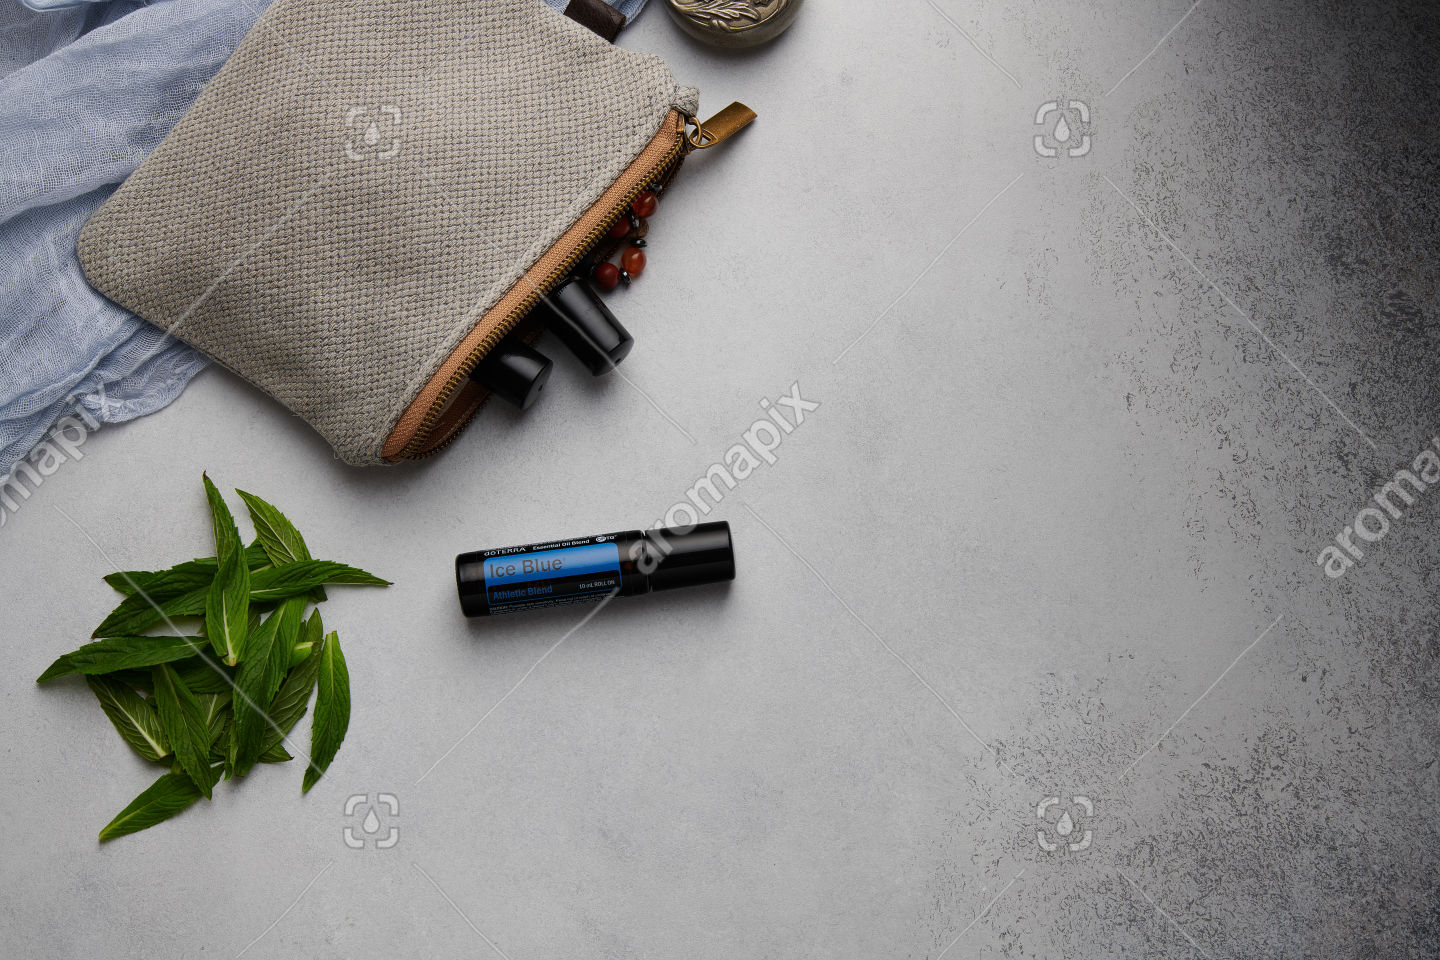 doTERRA Ice Blue Roll On with mint leaves on white